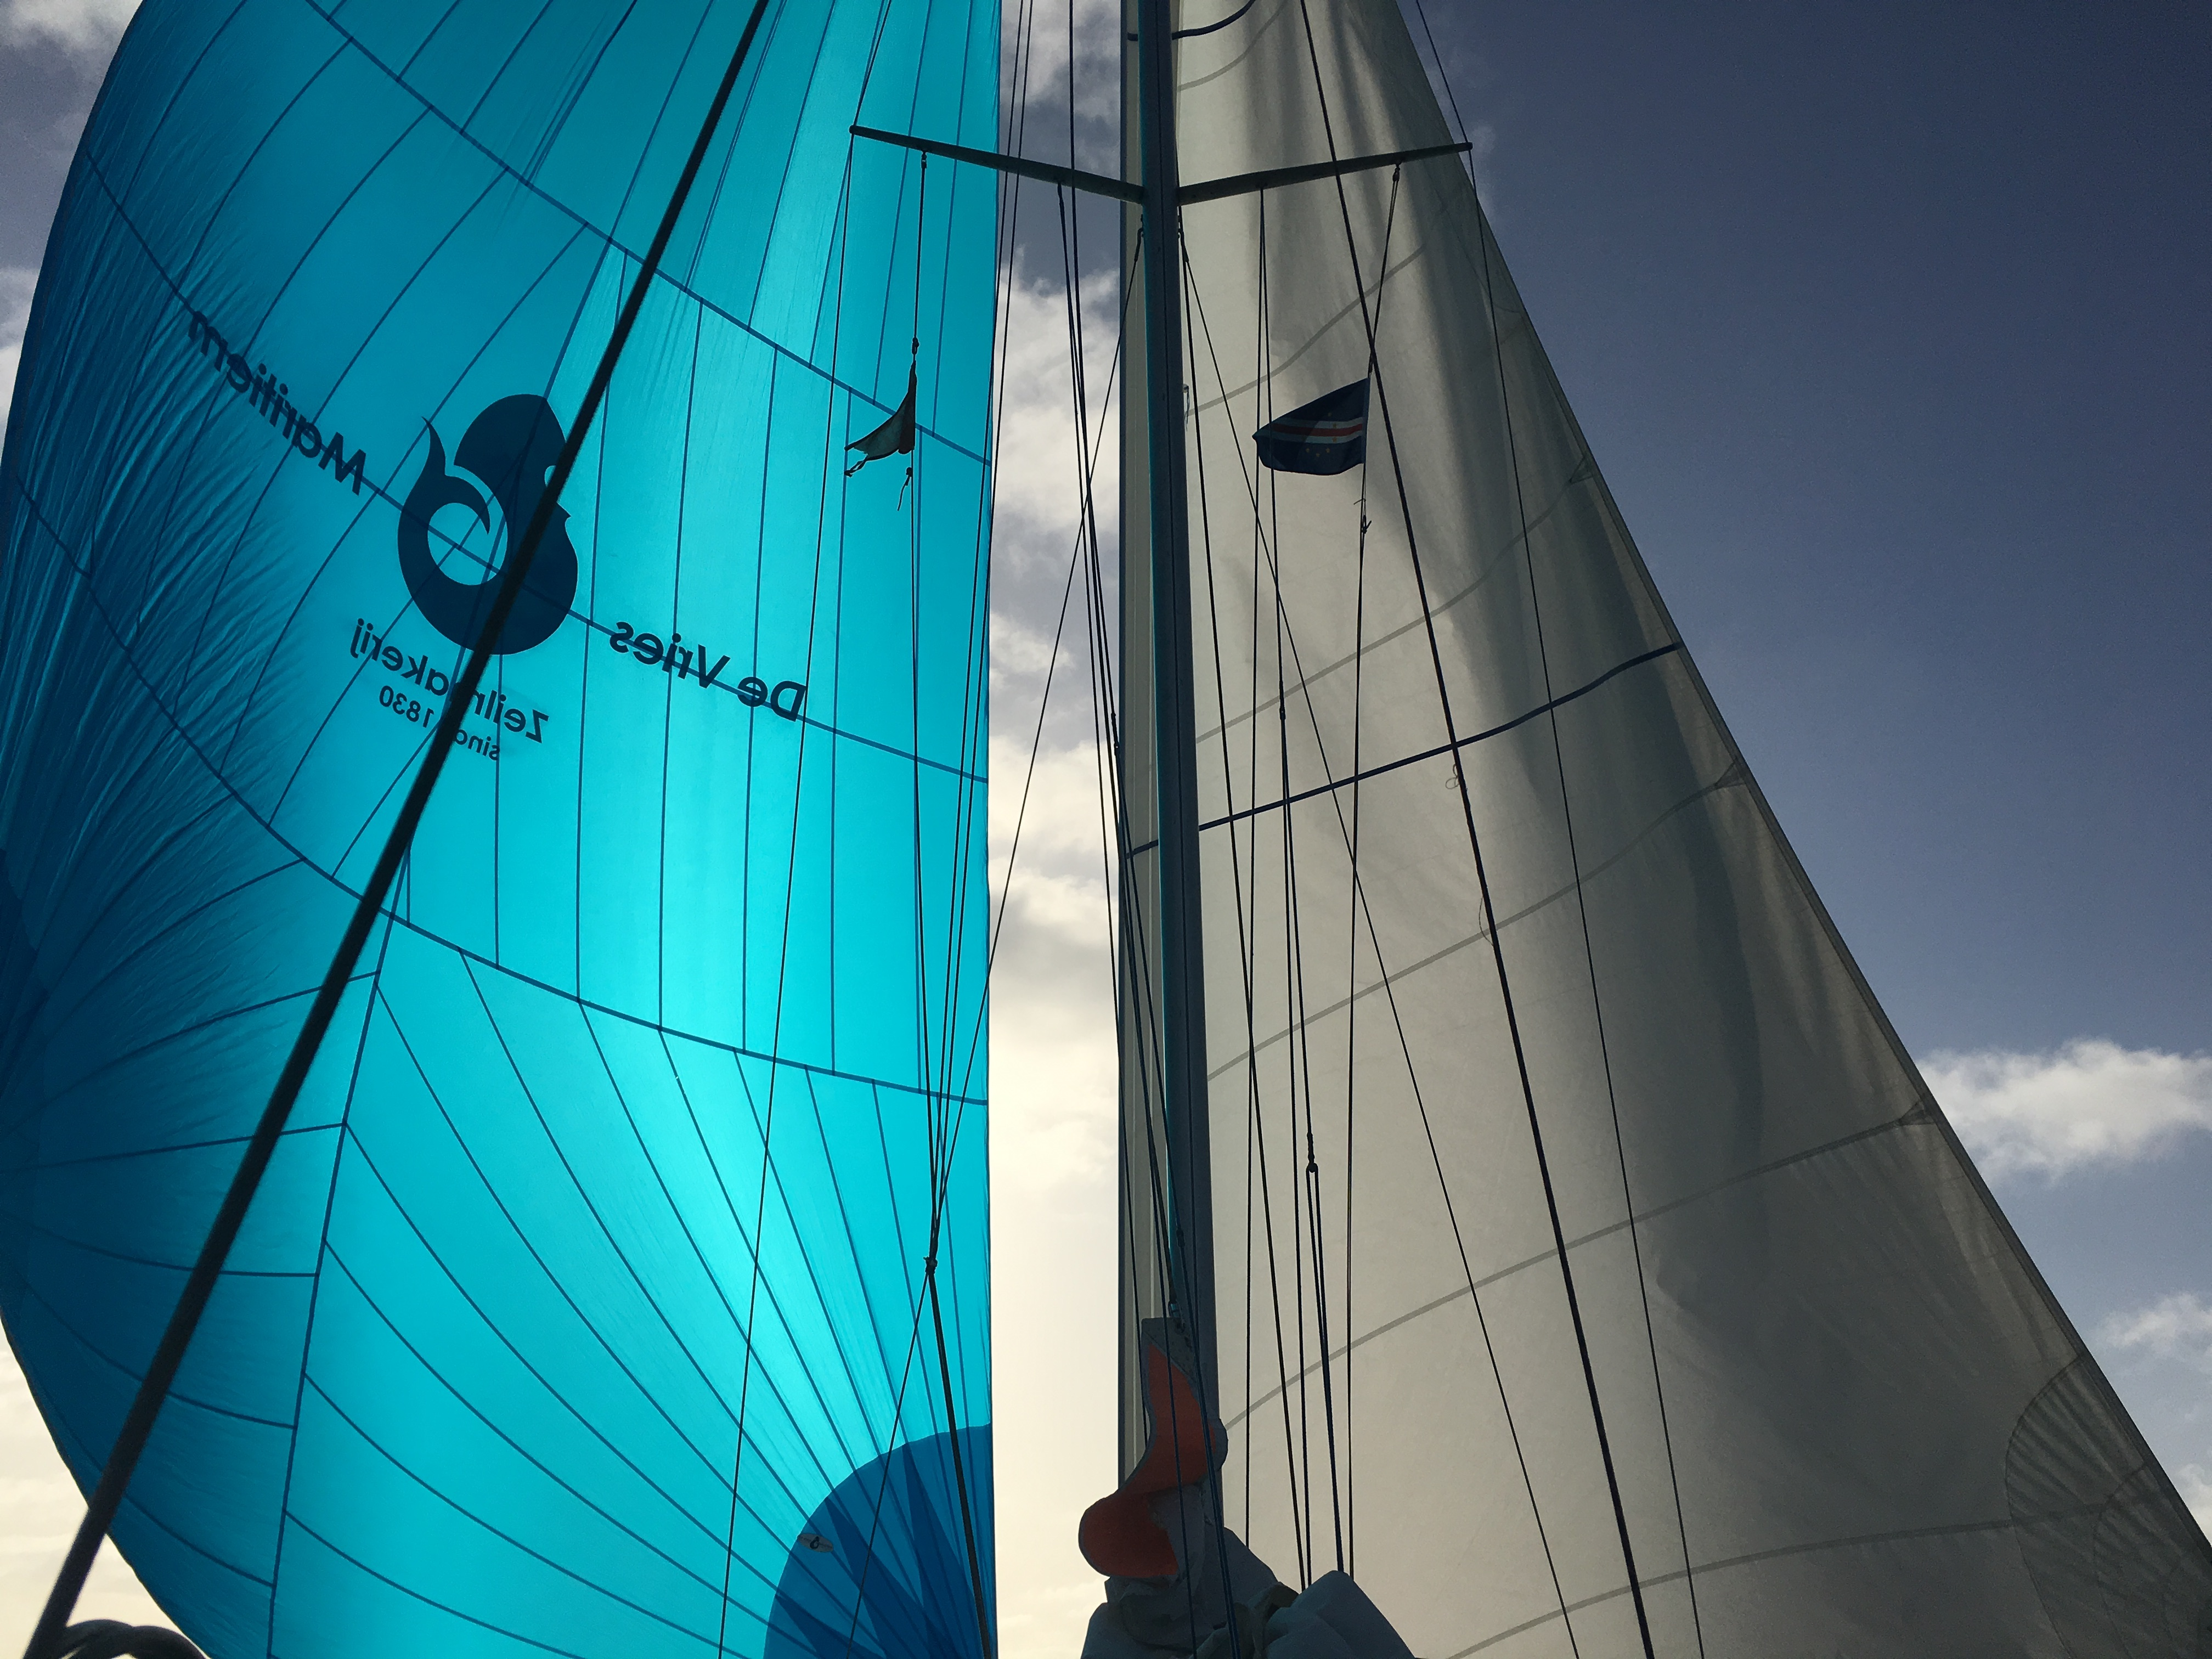 Their gennaker (left) and mainsail (right).